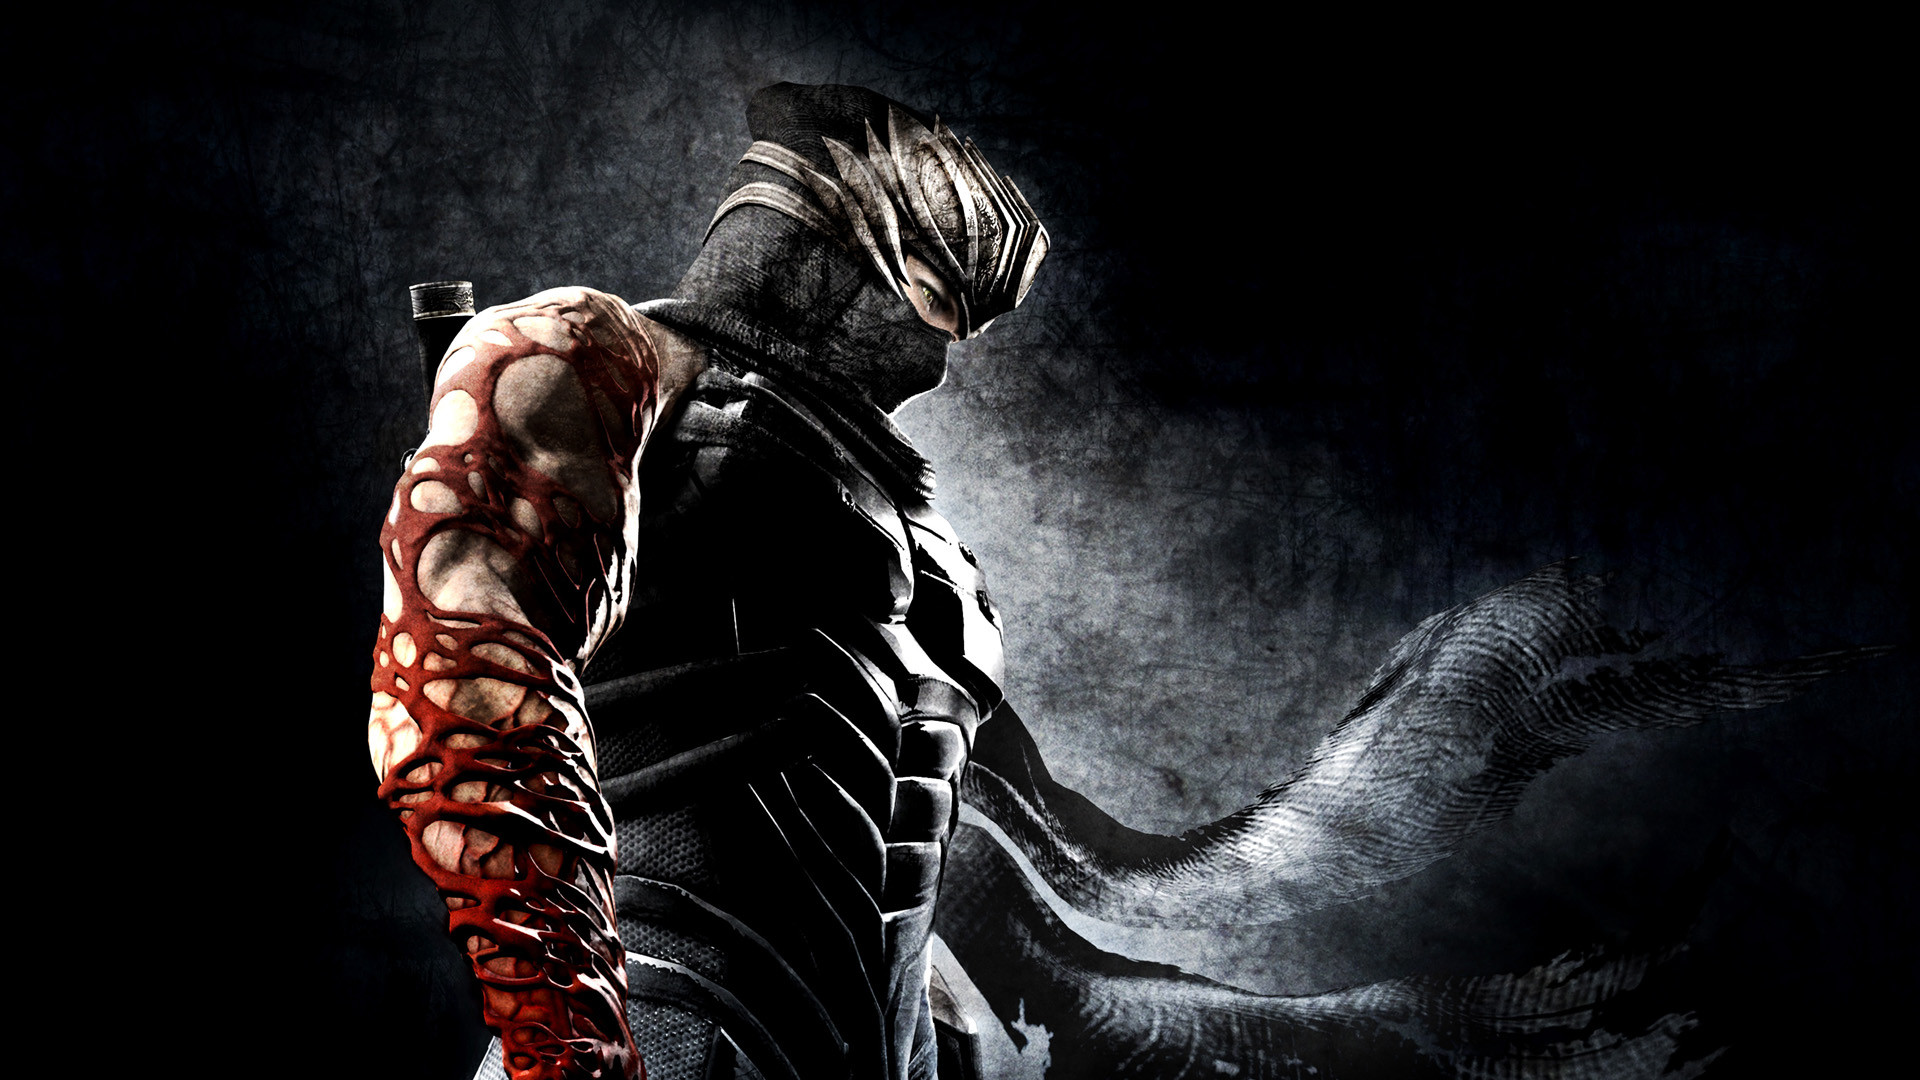 This is the most badass videogame character ever, lol no contest .